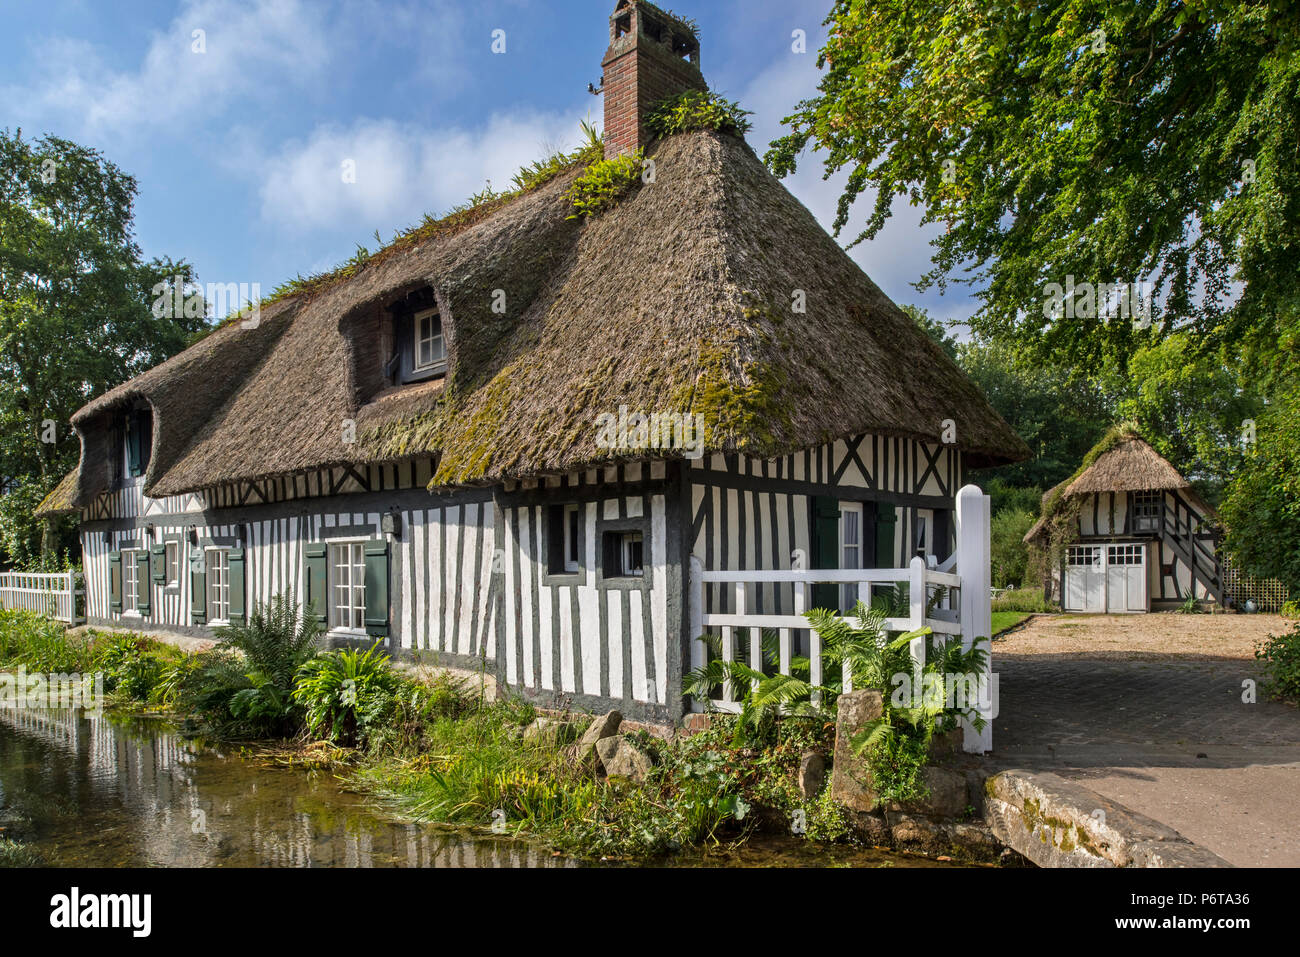 Timber-framed house with thatched roof along the river Veules, France's shortest river at Veules-les-Roses, Seine-Maritime, Côte d'Albâtre, Normandy - Stock Image